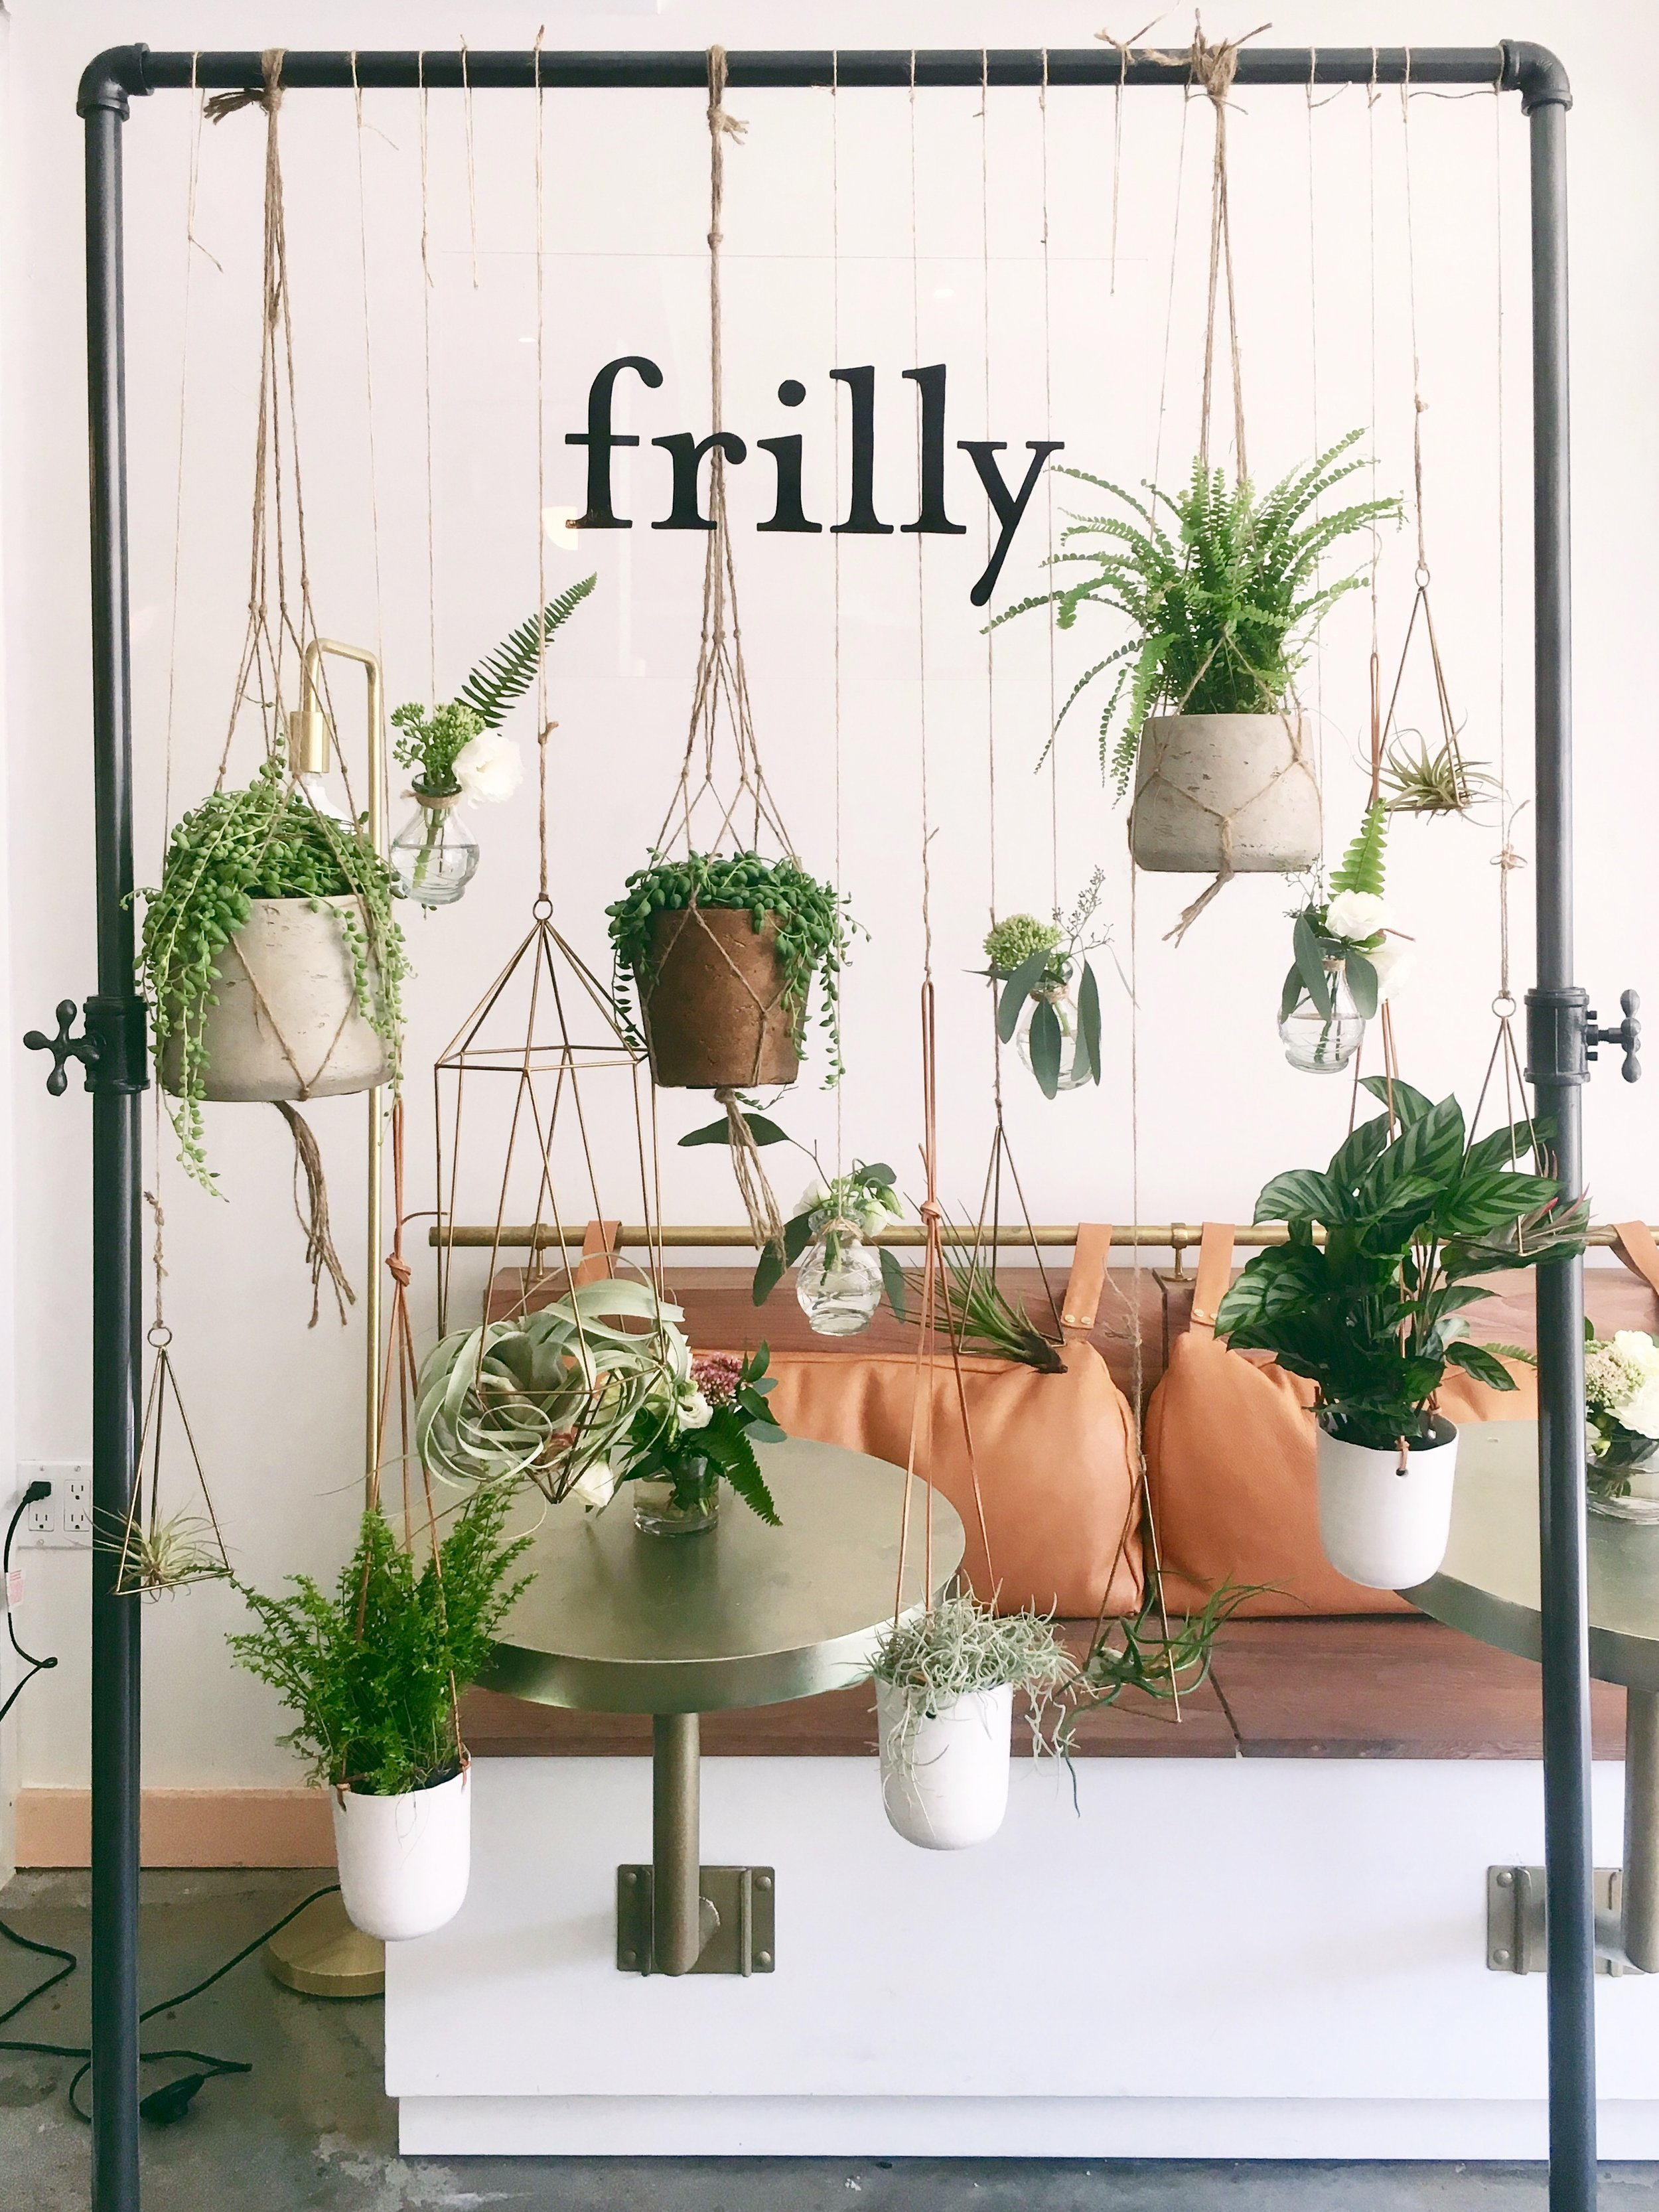 The Frilly at Chillhouse